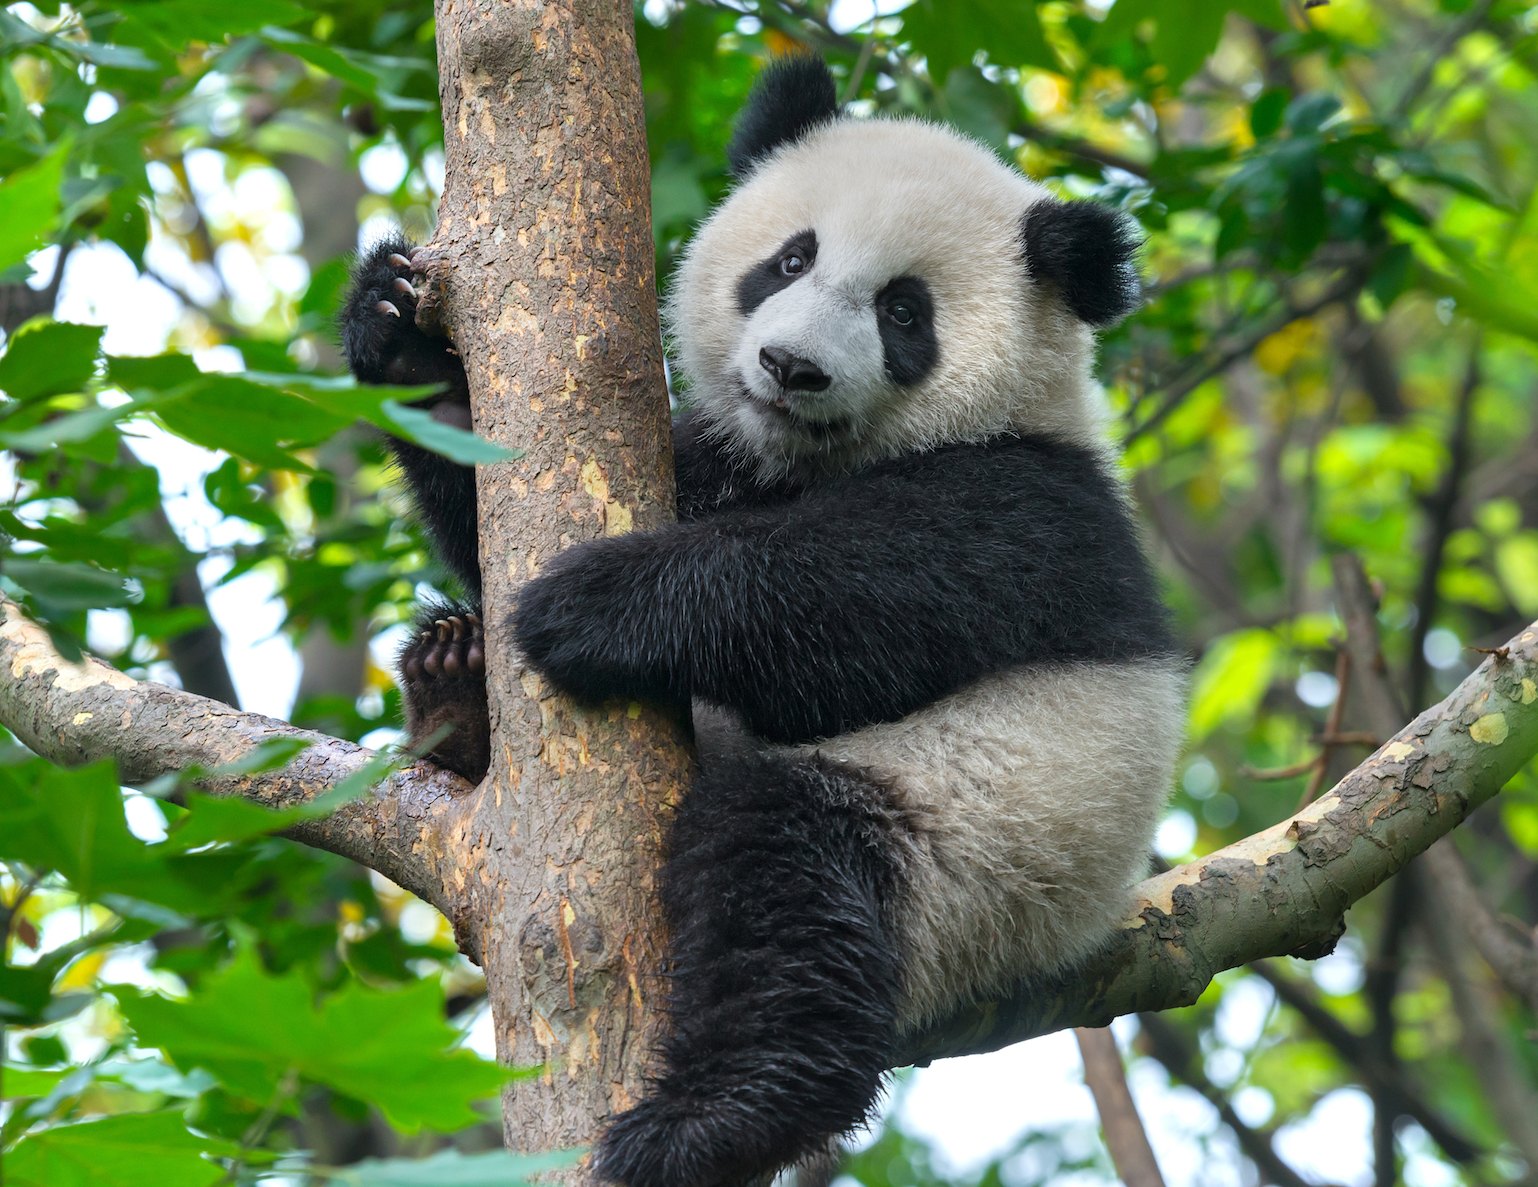 A new study has found that panda conservation actually has significant value that extends beyond protection of the pandas themselves.